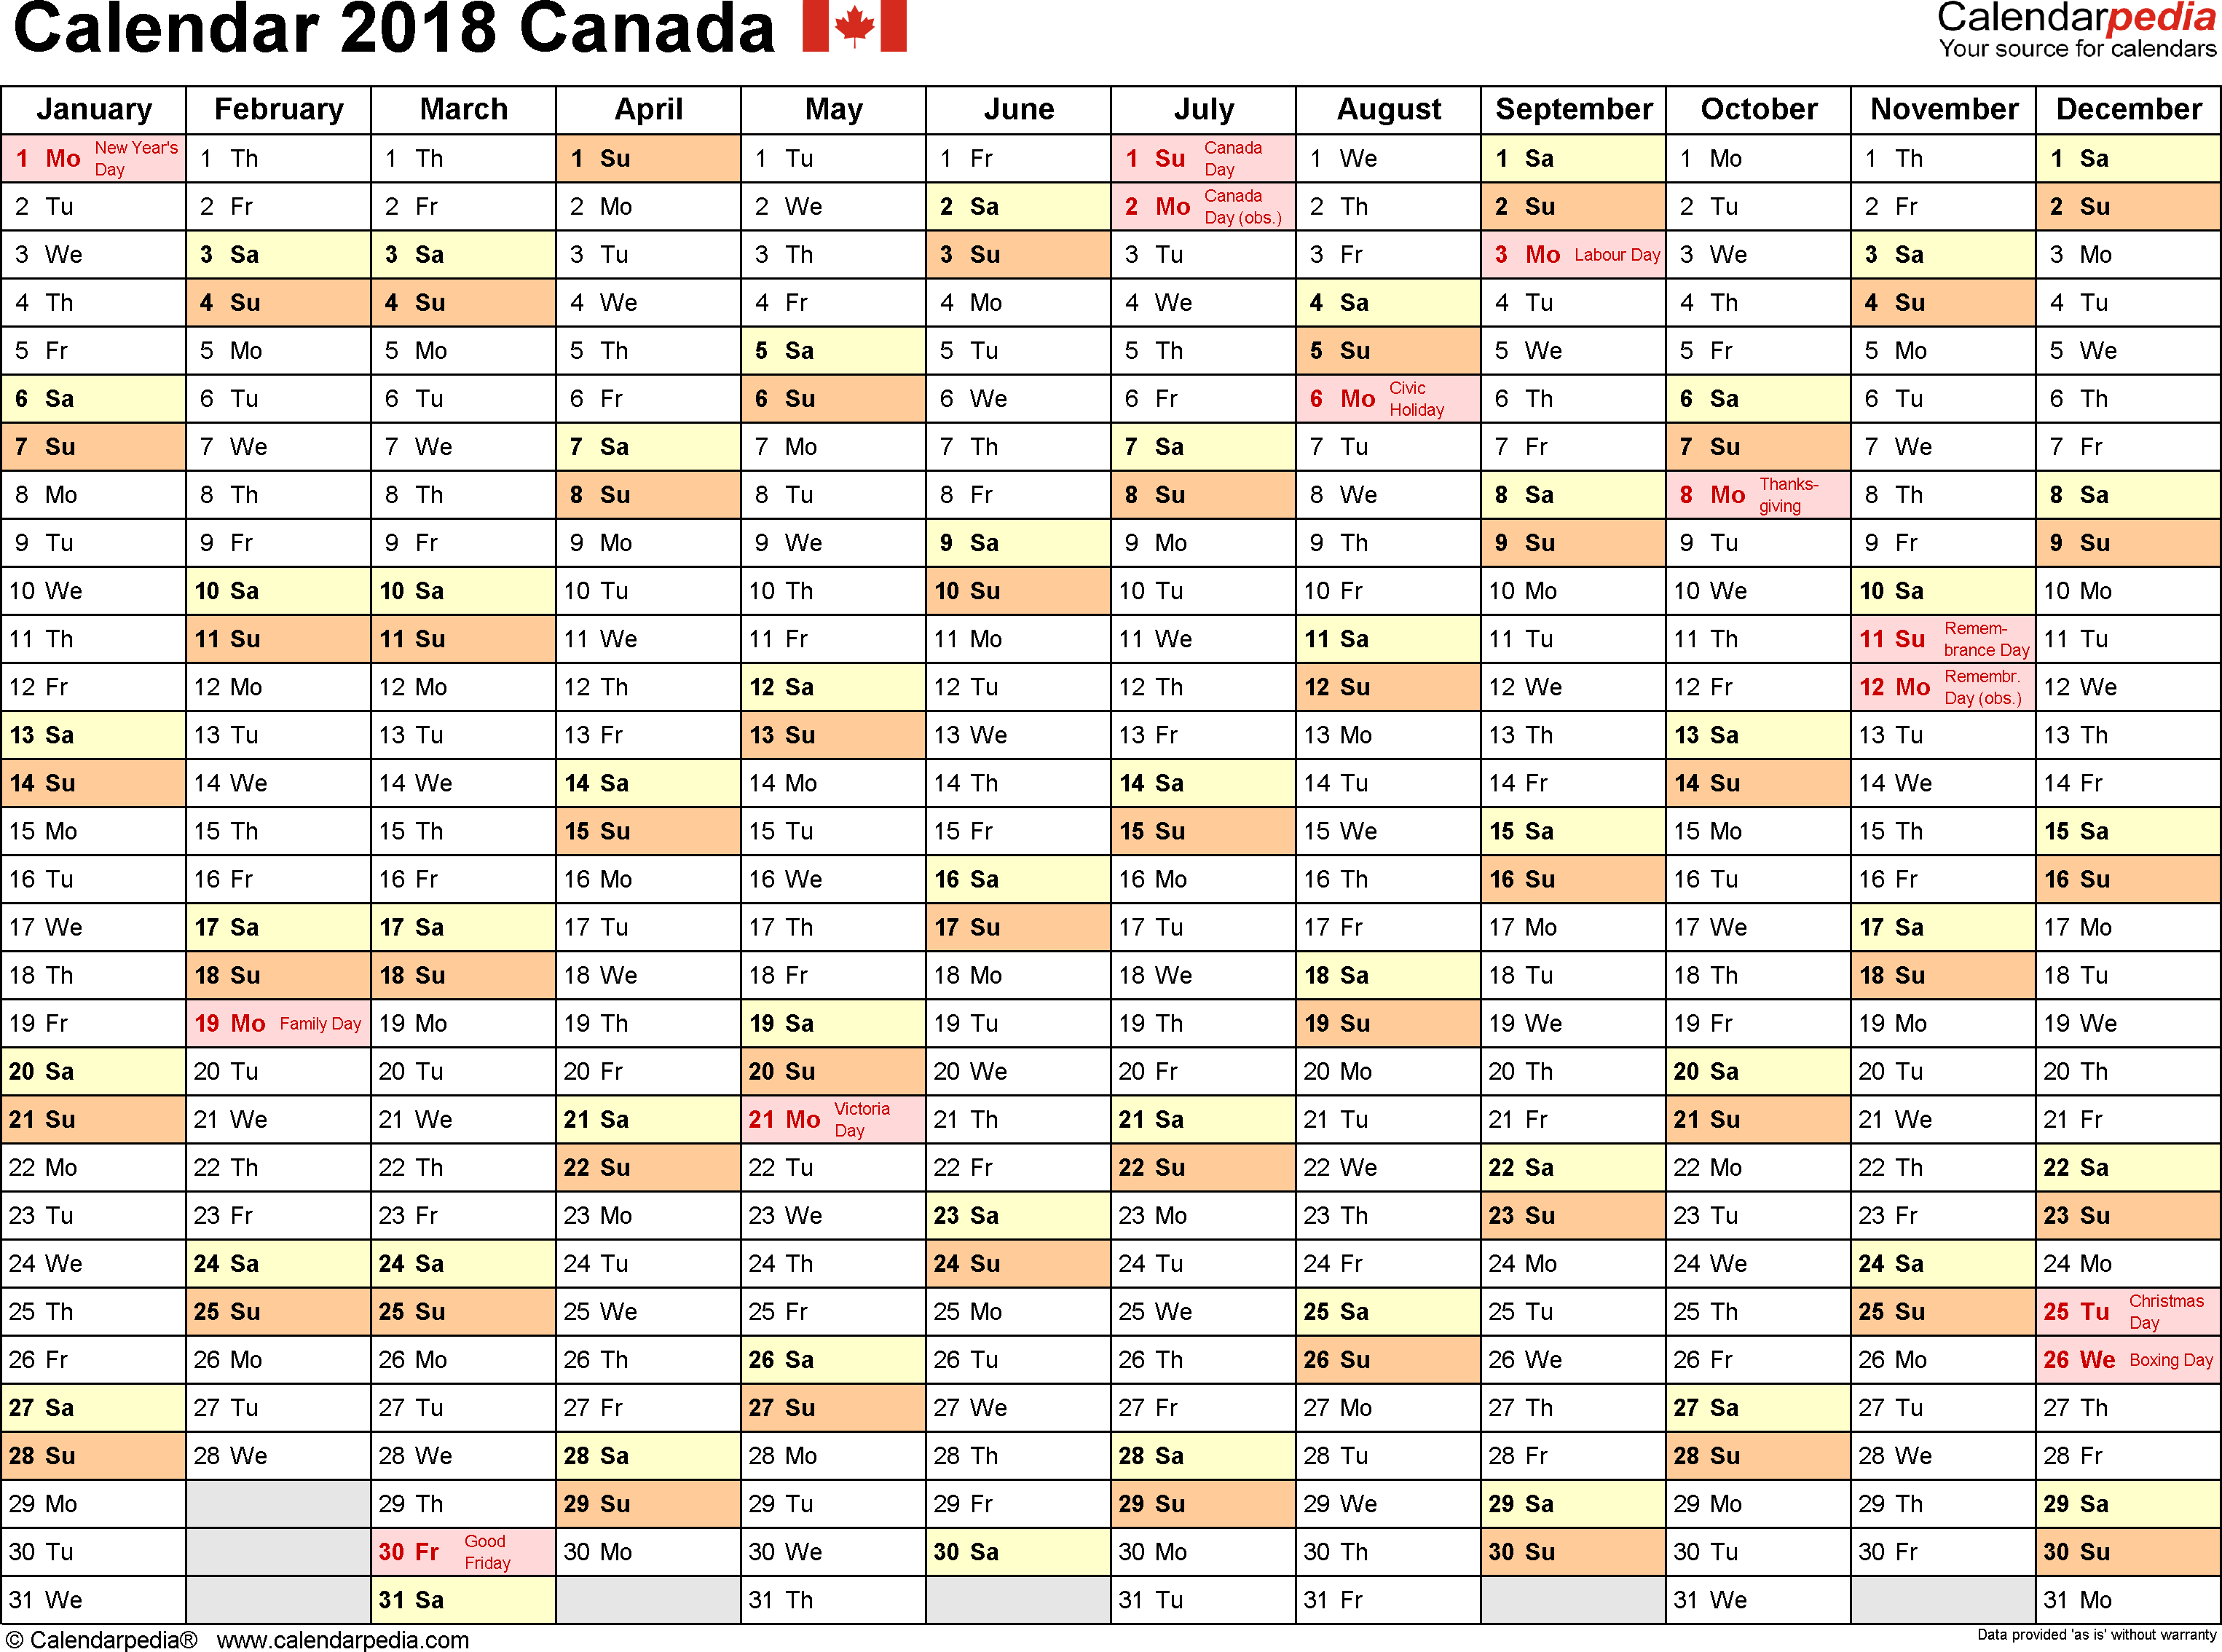 Template 2: 2018 Calendar Canada for PDF, months horizontally, 1 page, landscape orientation